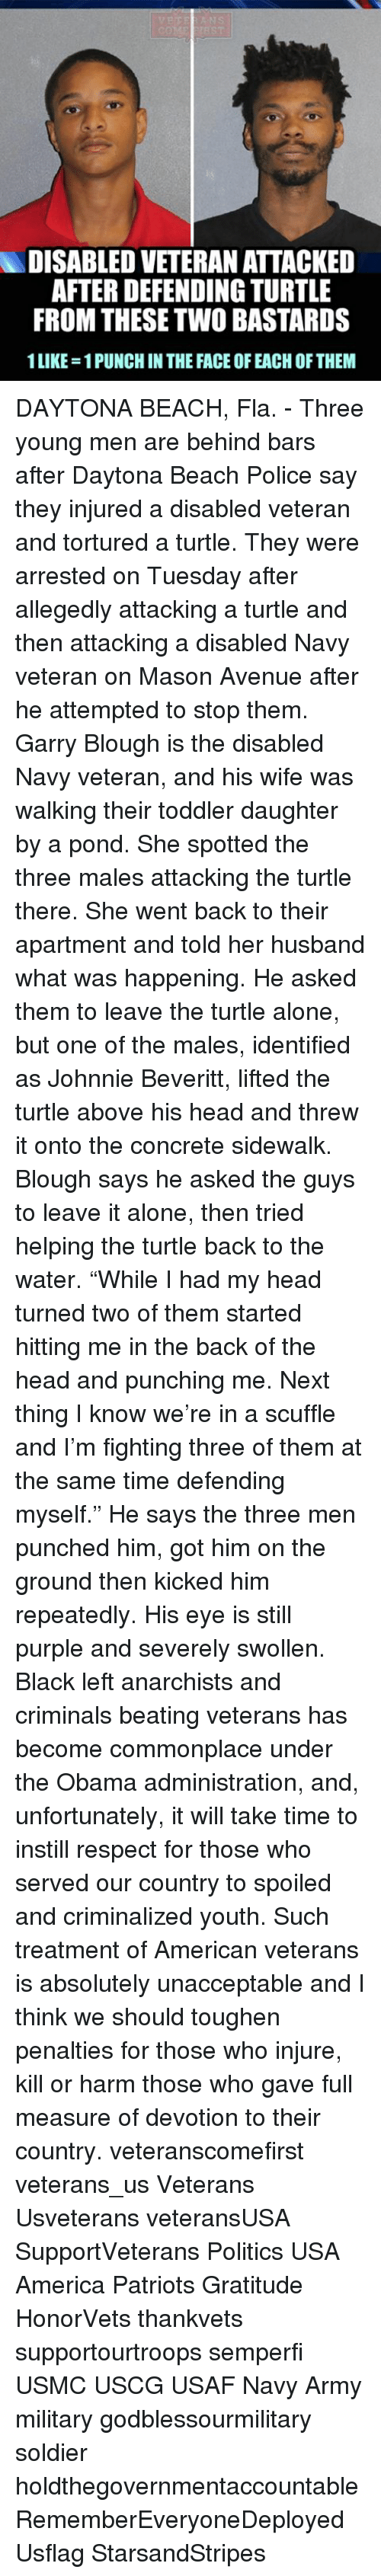 "Being Alone, America, and Head: DISABLED VETERAN ATTACKED  AFTER DEFENDING TURTLE  FROM THESETWO BASTARDS  1LIKE-1PUNCH IN THE FACE OF EACH OF THEM DAYTONA BEACH, Fla. - Three young men are behind bars after Daytona Beach Police say they injured a disabled veteran and tortured a turtle. They were arrested on Tuesday after allegedly attacking a turtle and then attacking a disabled Navy veteran on Mason Avenue after he attempted to stop them. Garry Blough is the disabled Navy veteran, and his wife was walking their toddler daughter by a pond. She spotted the three males attacking the turtle there. She went back to their apartment and told her husband what was happening. He asked them to leave the turtle alone, but one of the males, identified as Johnnie Beveritt, lifted the turtle above his head and threw it onto the concrete sidewalk. Blough says he asked the guys to leave it alone, then tried helping the turtle back to the water. ""While I had my head turned two of them started hitting me in the back of the head and punching me. Next thing I know we're in a scuffle and I'm fighting three of them at the same time defending myself."" He says the three men punched him, got him on the ground then kicked him repeatedly. His eye is still purple and severely swollen. Black left anarchists and criminals beating veterans has become commonplace under the Obama administration, and, unfortunately, it will take time to instill respect for those who served our country to spoiled and criminalized youth. Such treatment of American veterans is absolutely unacceptable and I think we should toughen penalties for those who injure, kill or harm those who gave full measure of devotion to their country. veteranscomefirst veterans_us Veterans Usveterans veteransUSA SupportVeterans Politics USA America Patriots Gratitude HonorVets thankvets supportourtroops semperfi USMC USCG USAF Navy Army military godblessourmilitary soldier holdthegovernmentaccountable RememberEveryoneDeployed Usflag StarsandStripes"